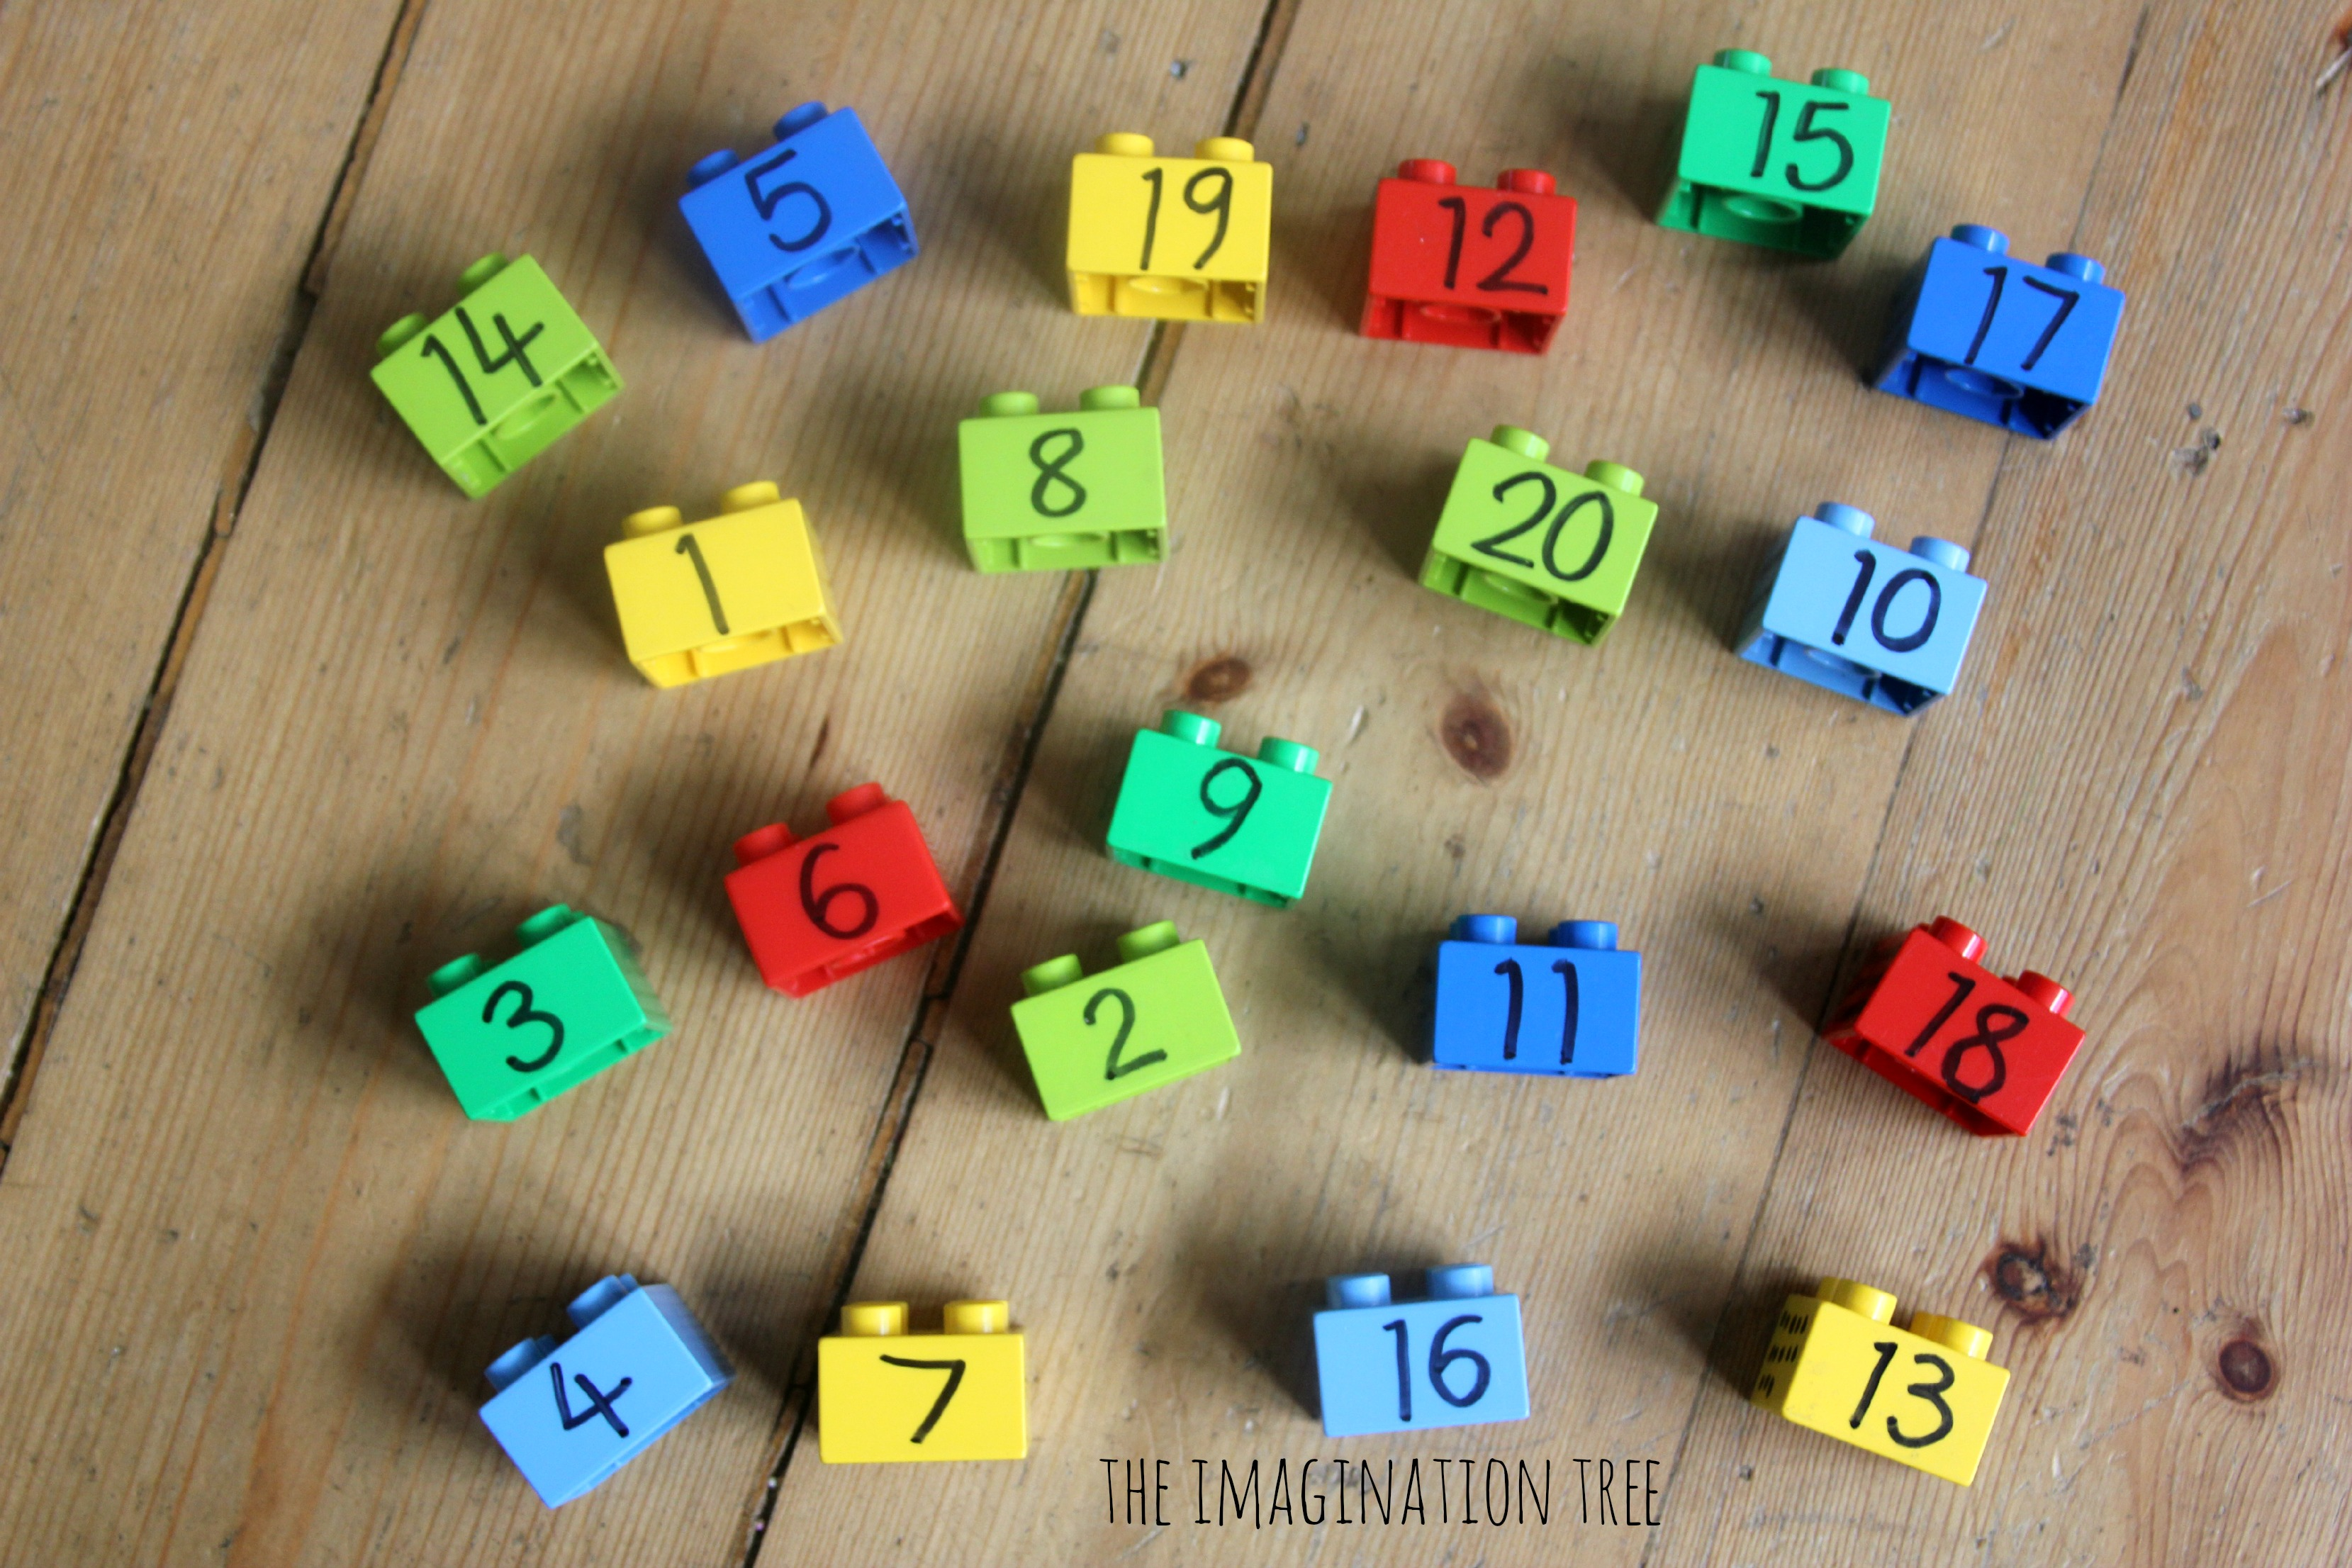 Lego number blocks and lots of ideas for using them in maths games